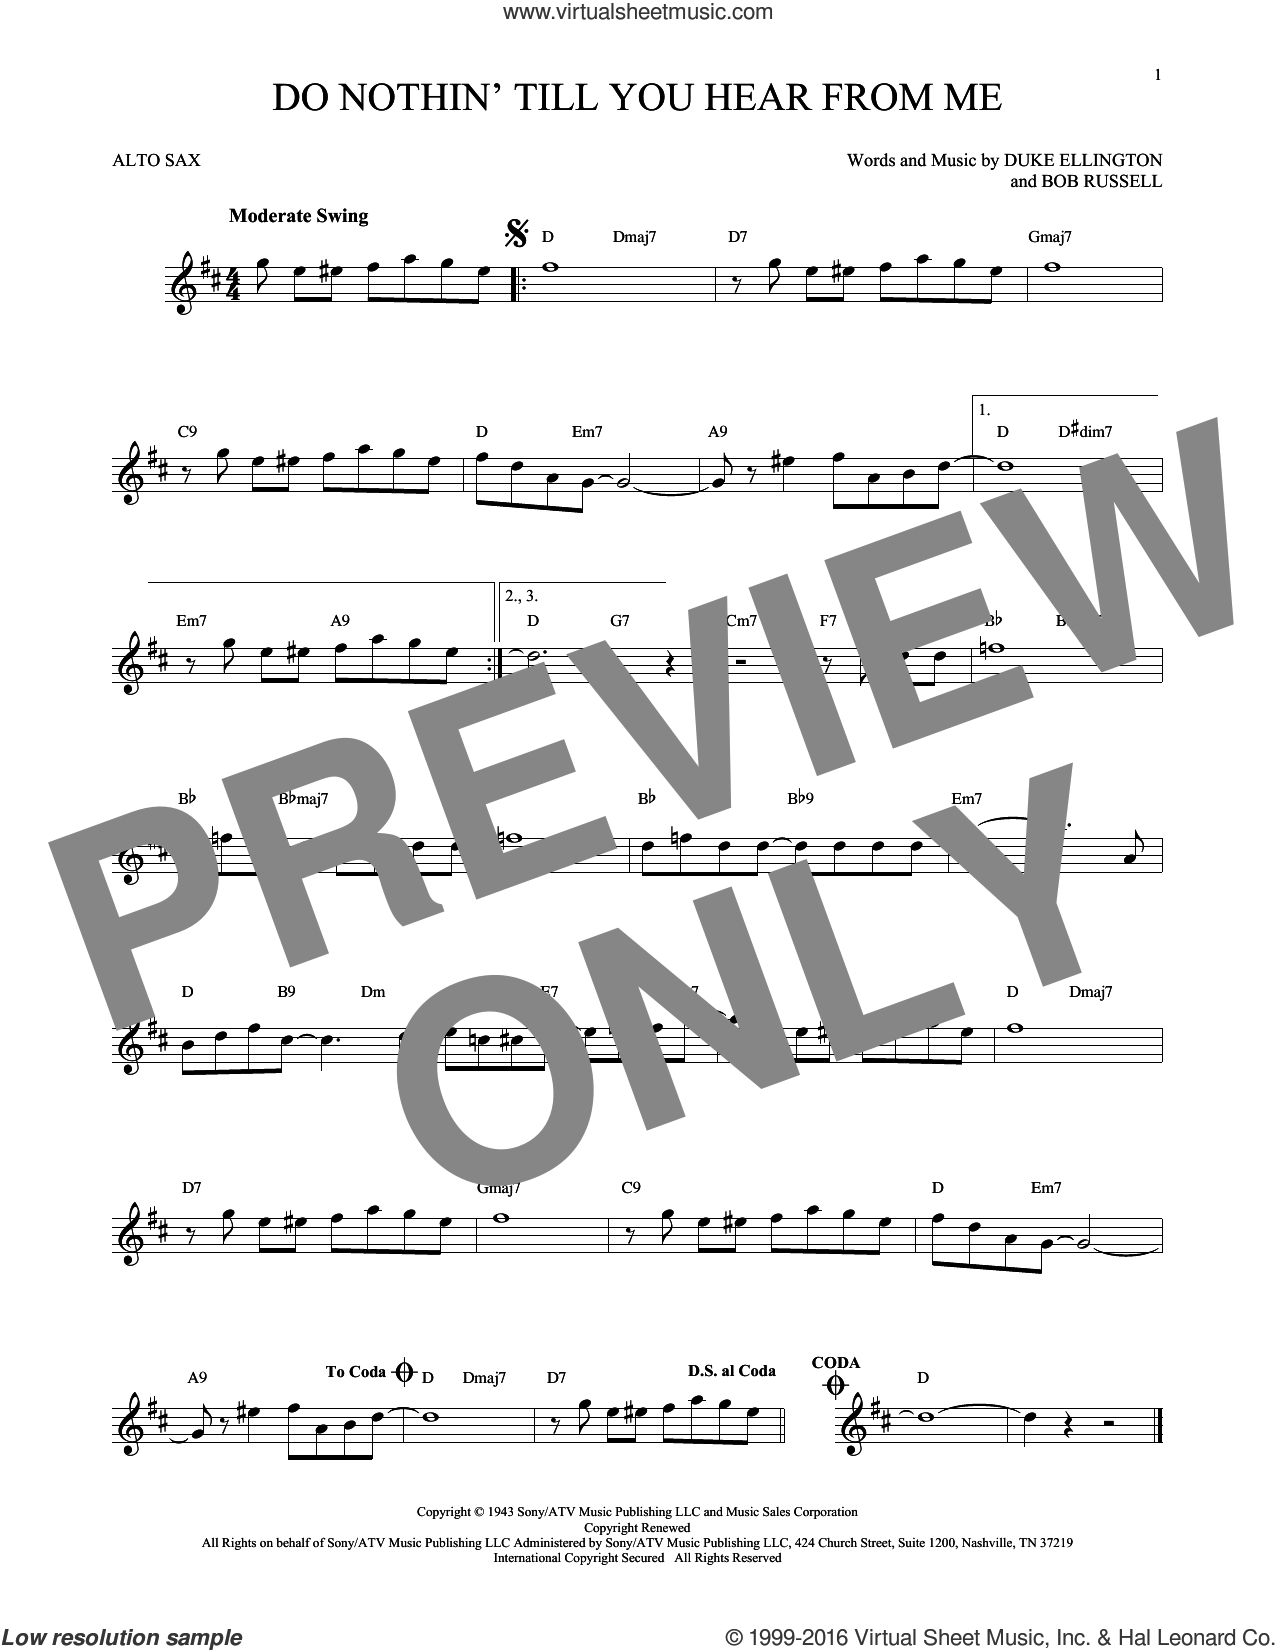 Do Nothin' Till You Hear From Me sheet music for alto saxophone solo by Duke Ellington and Bob Russell, intermediate skill level